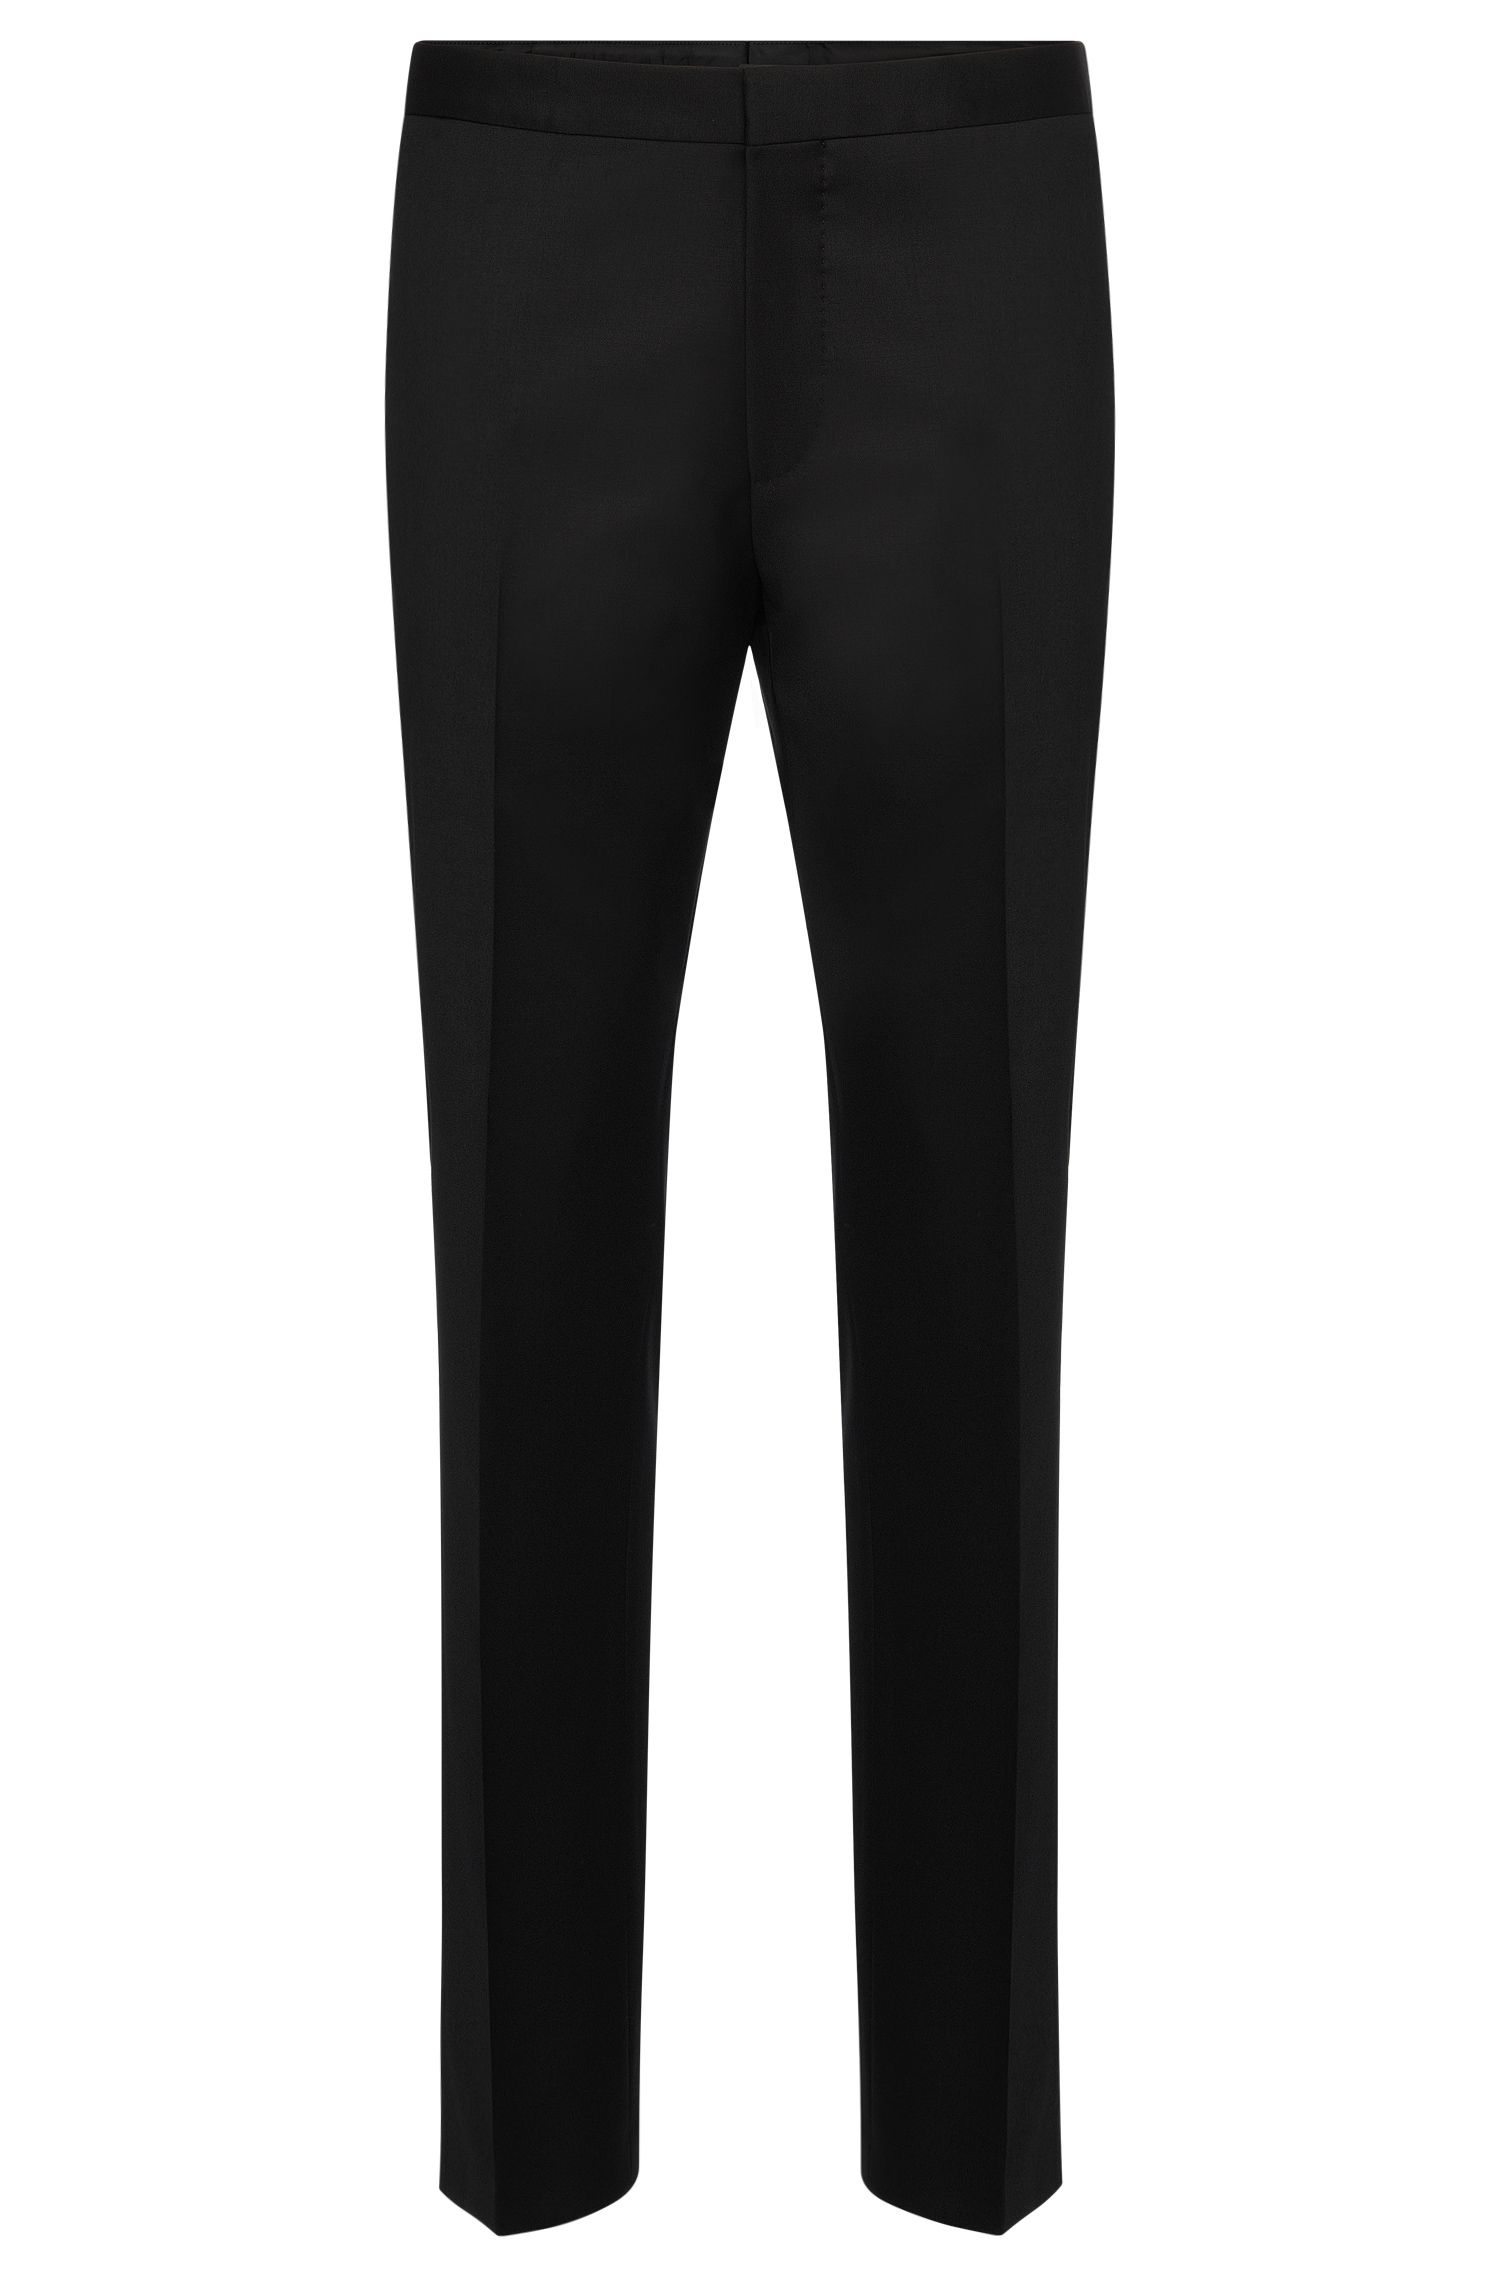 'Godwin' | Slim Fit, Super 120 Italian Virgin Wool Dress Pants